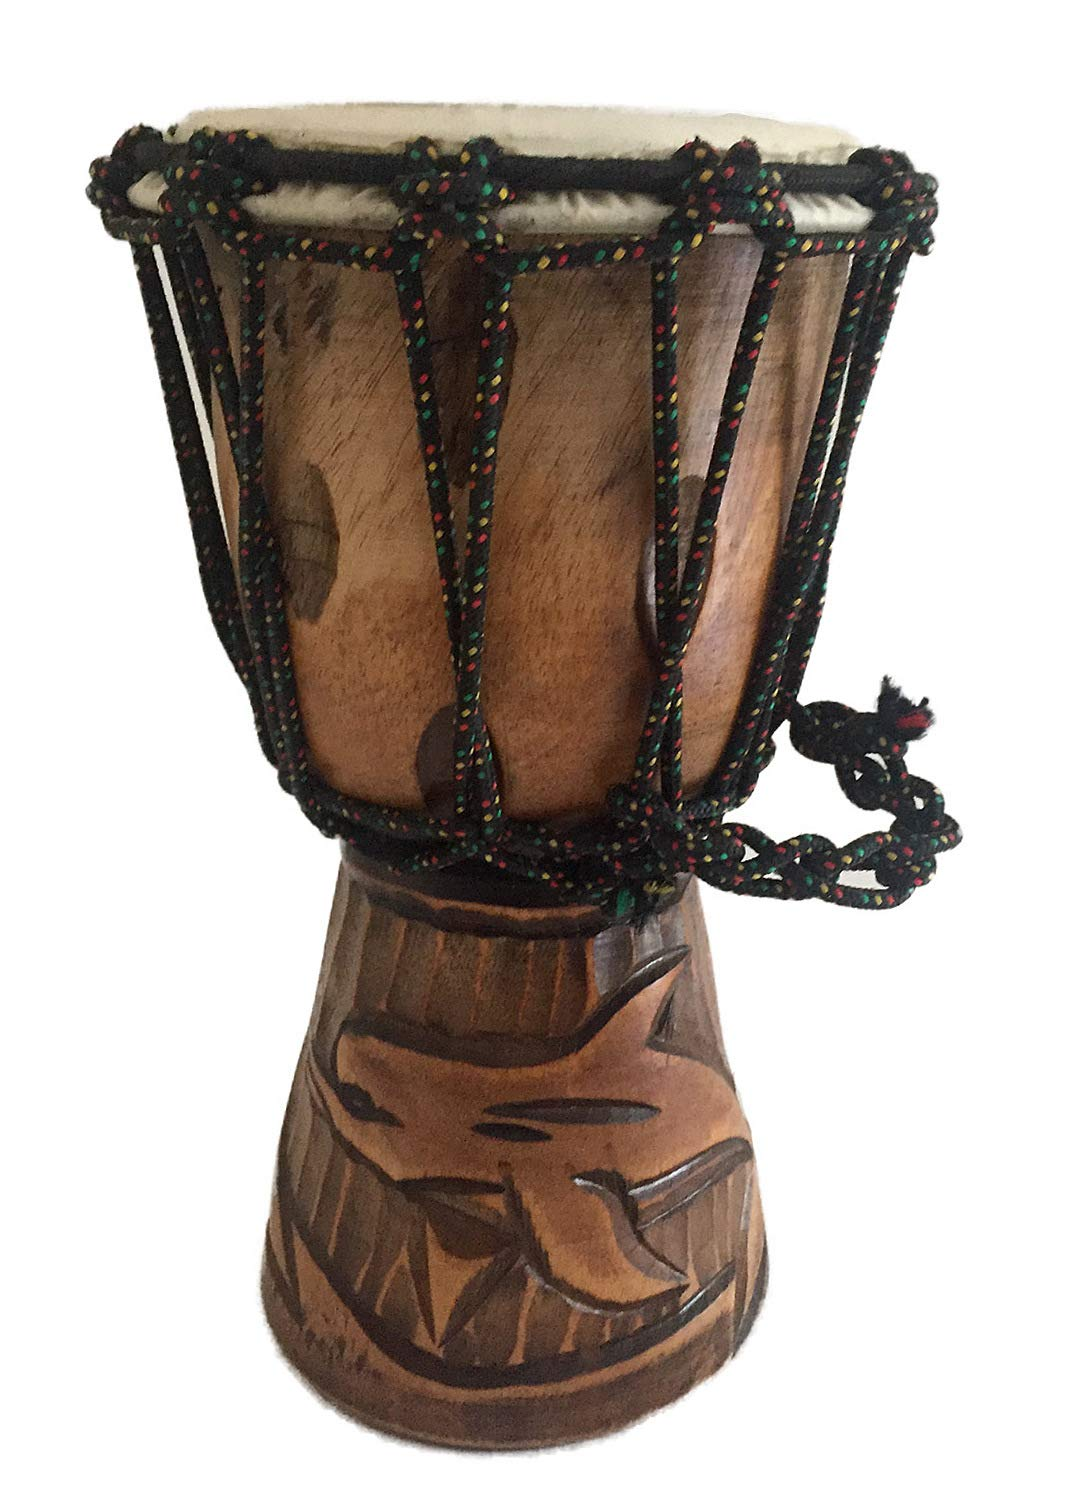 Djembe Drum Solid Wood Deep Carved Bongo Congo African Drum - 10'' HIGH MED SIZE - Professional Quality - NOT MADE IN CHINA - JIVE BRAND (Dolphin)